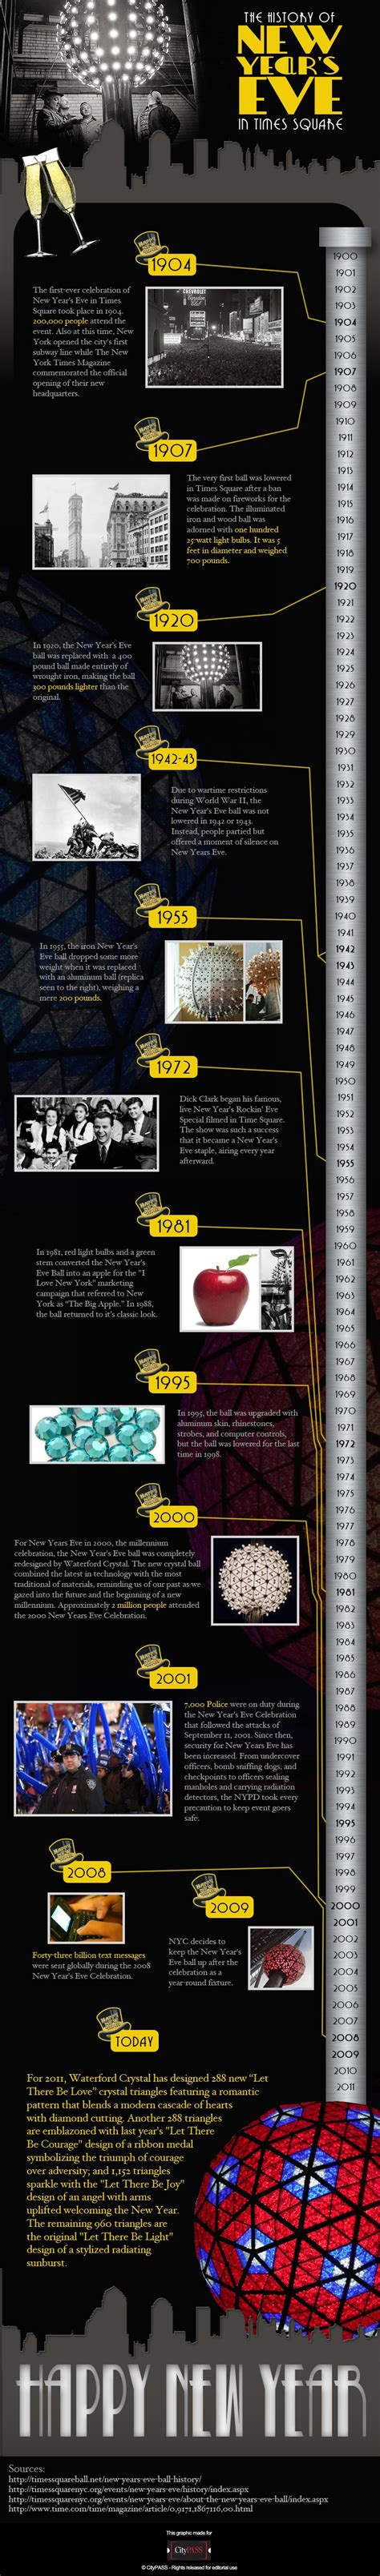 history of new year the history of new year s in times square citypass